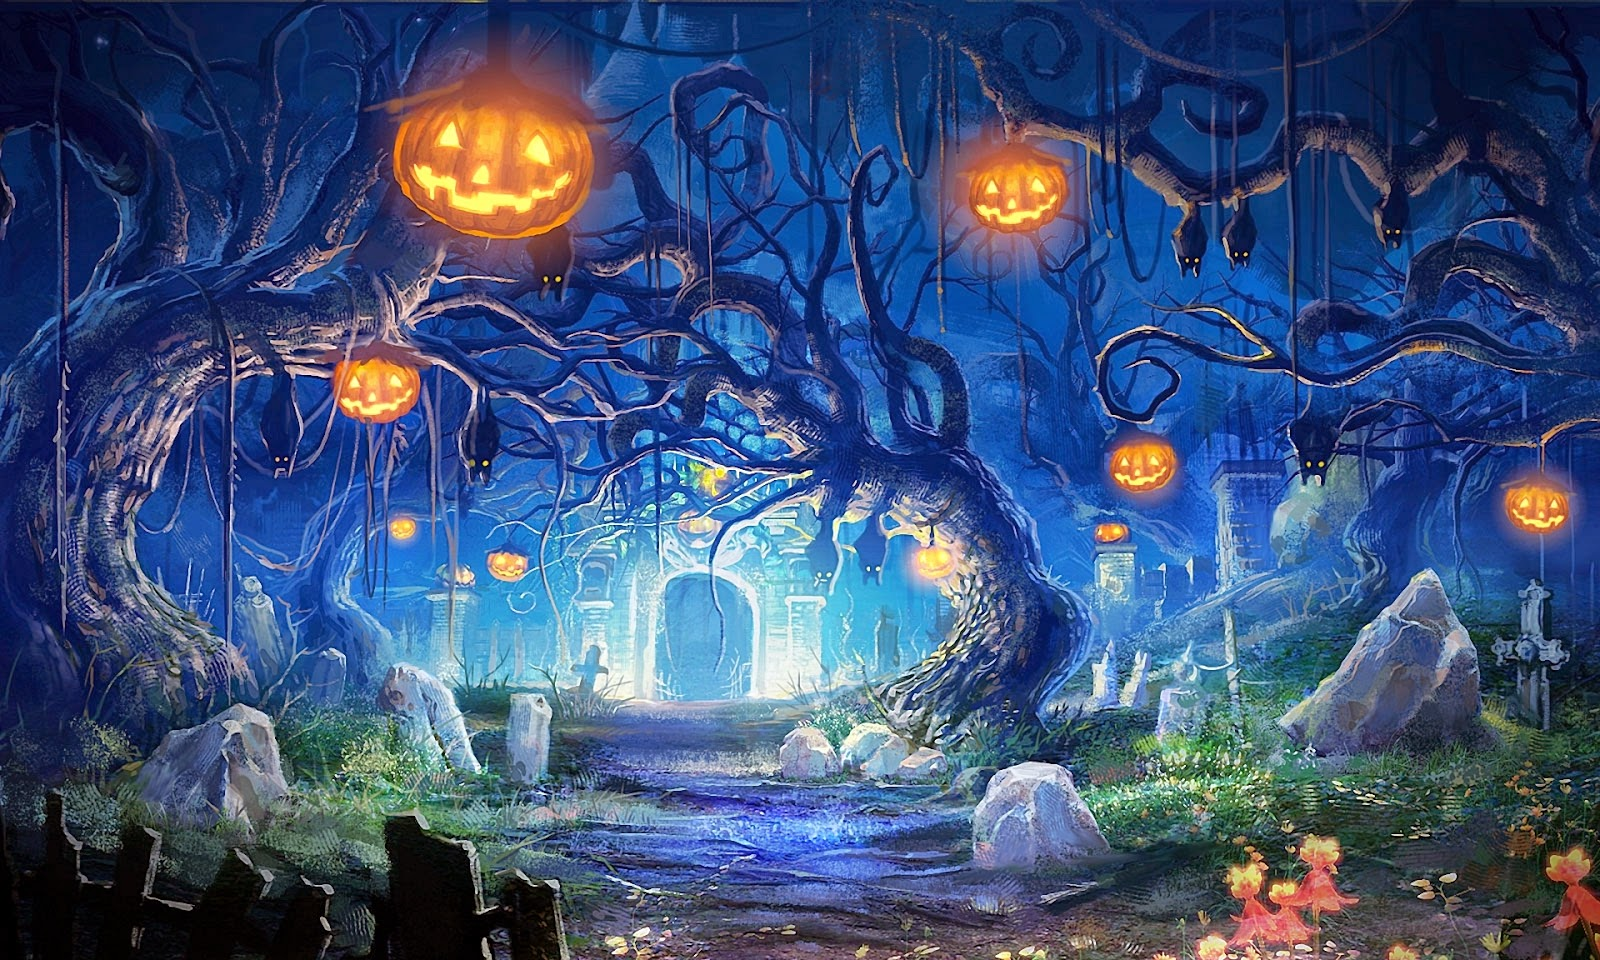 Halloween-night-decoration-house-image-paintings-HD-wallpapers.jpg